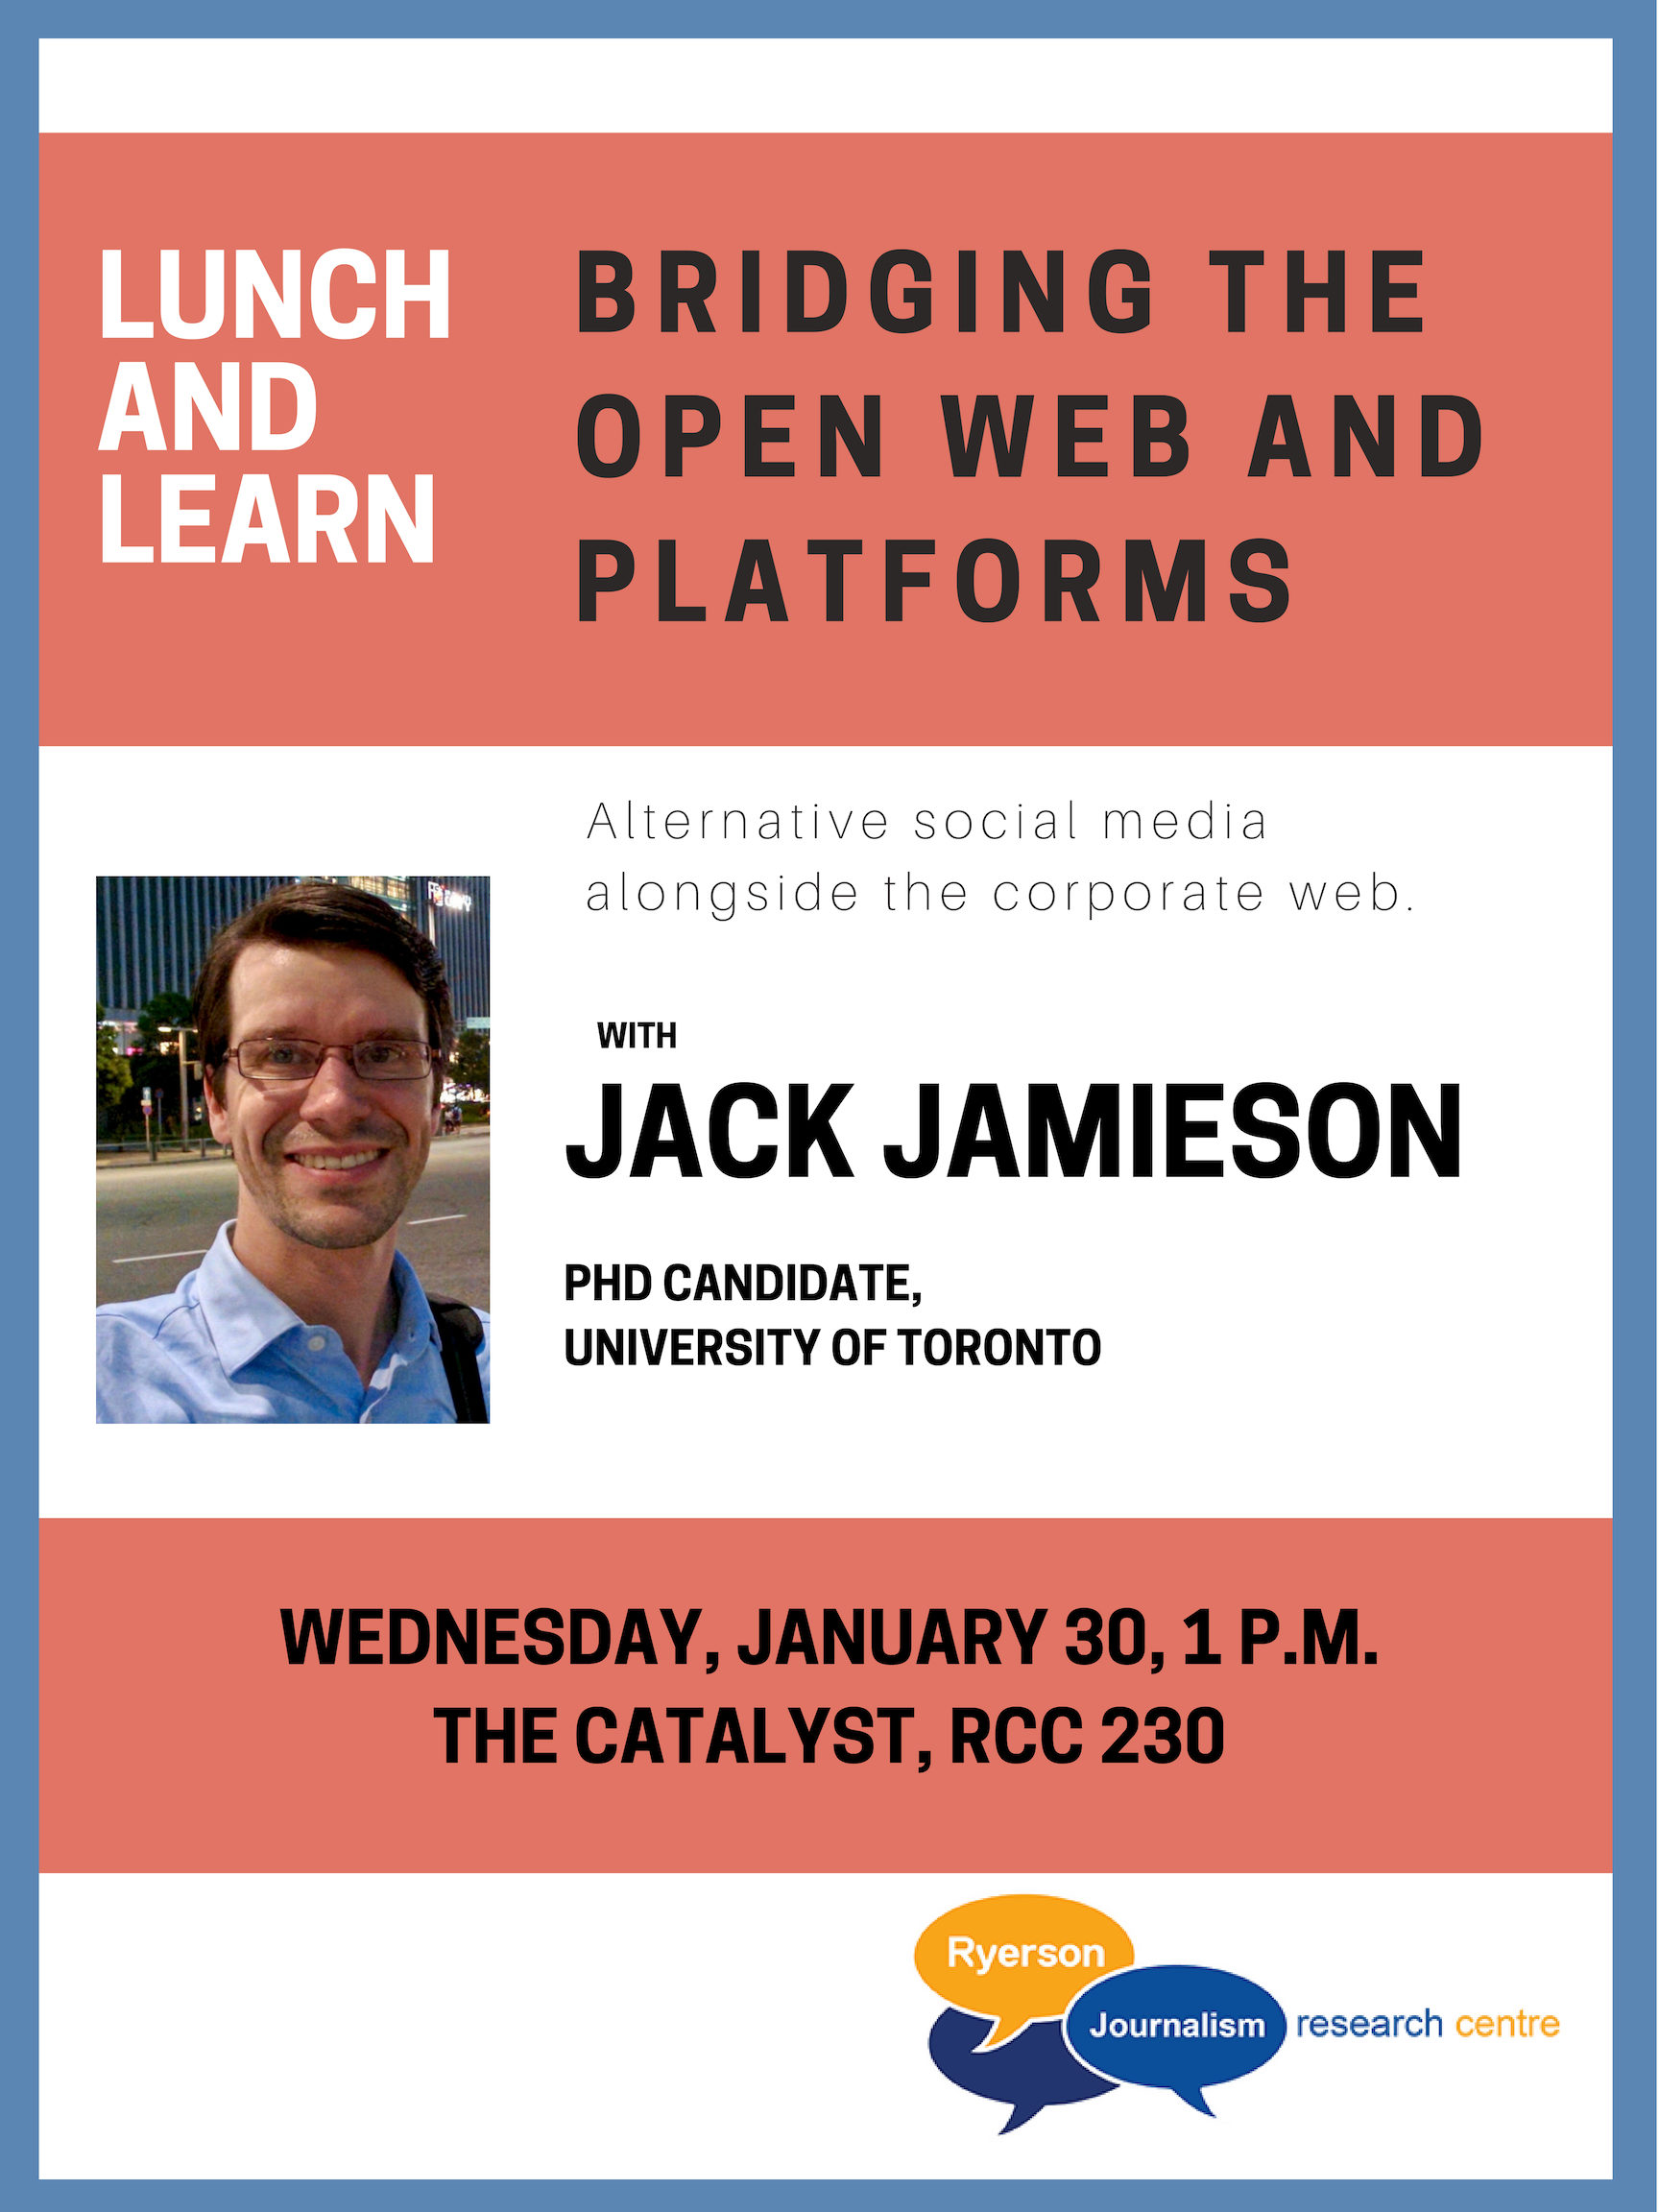 Photo of Lunch and Learn with Jack Jamieson